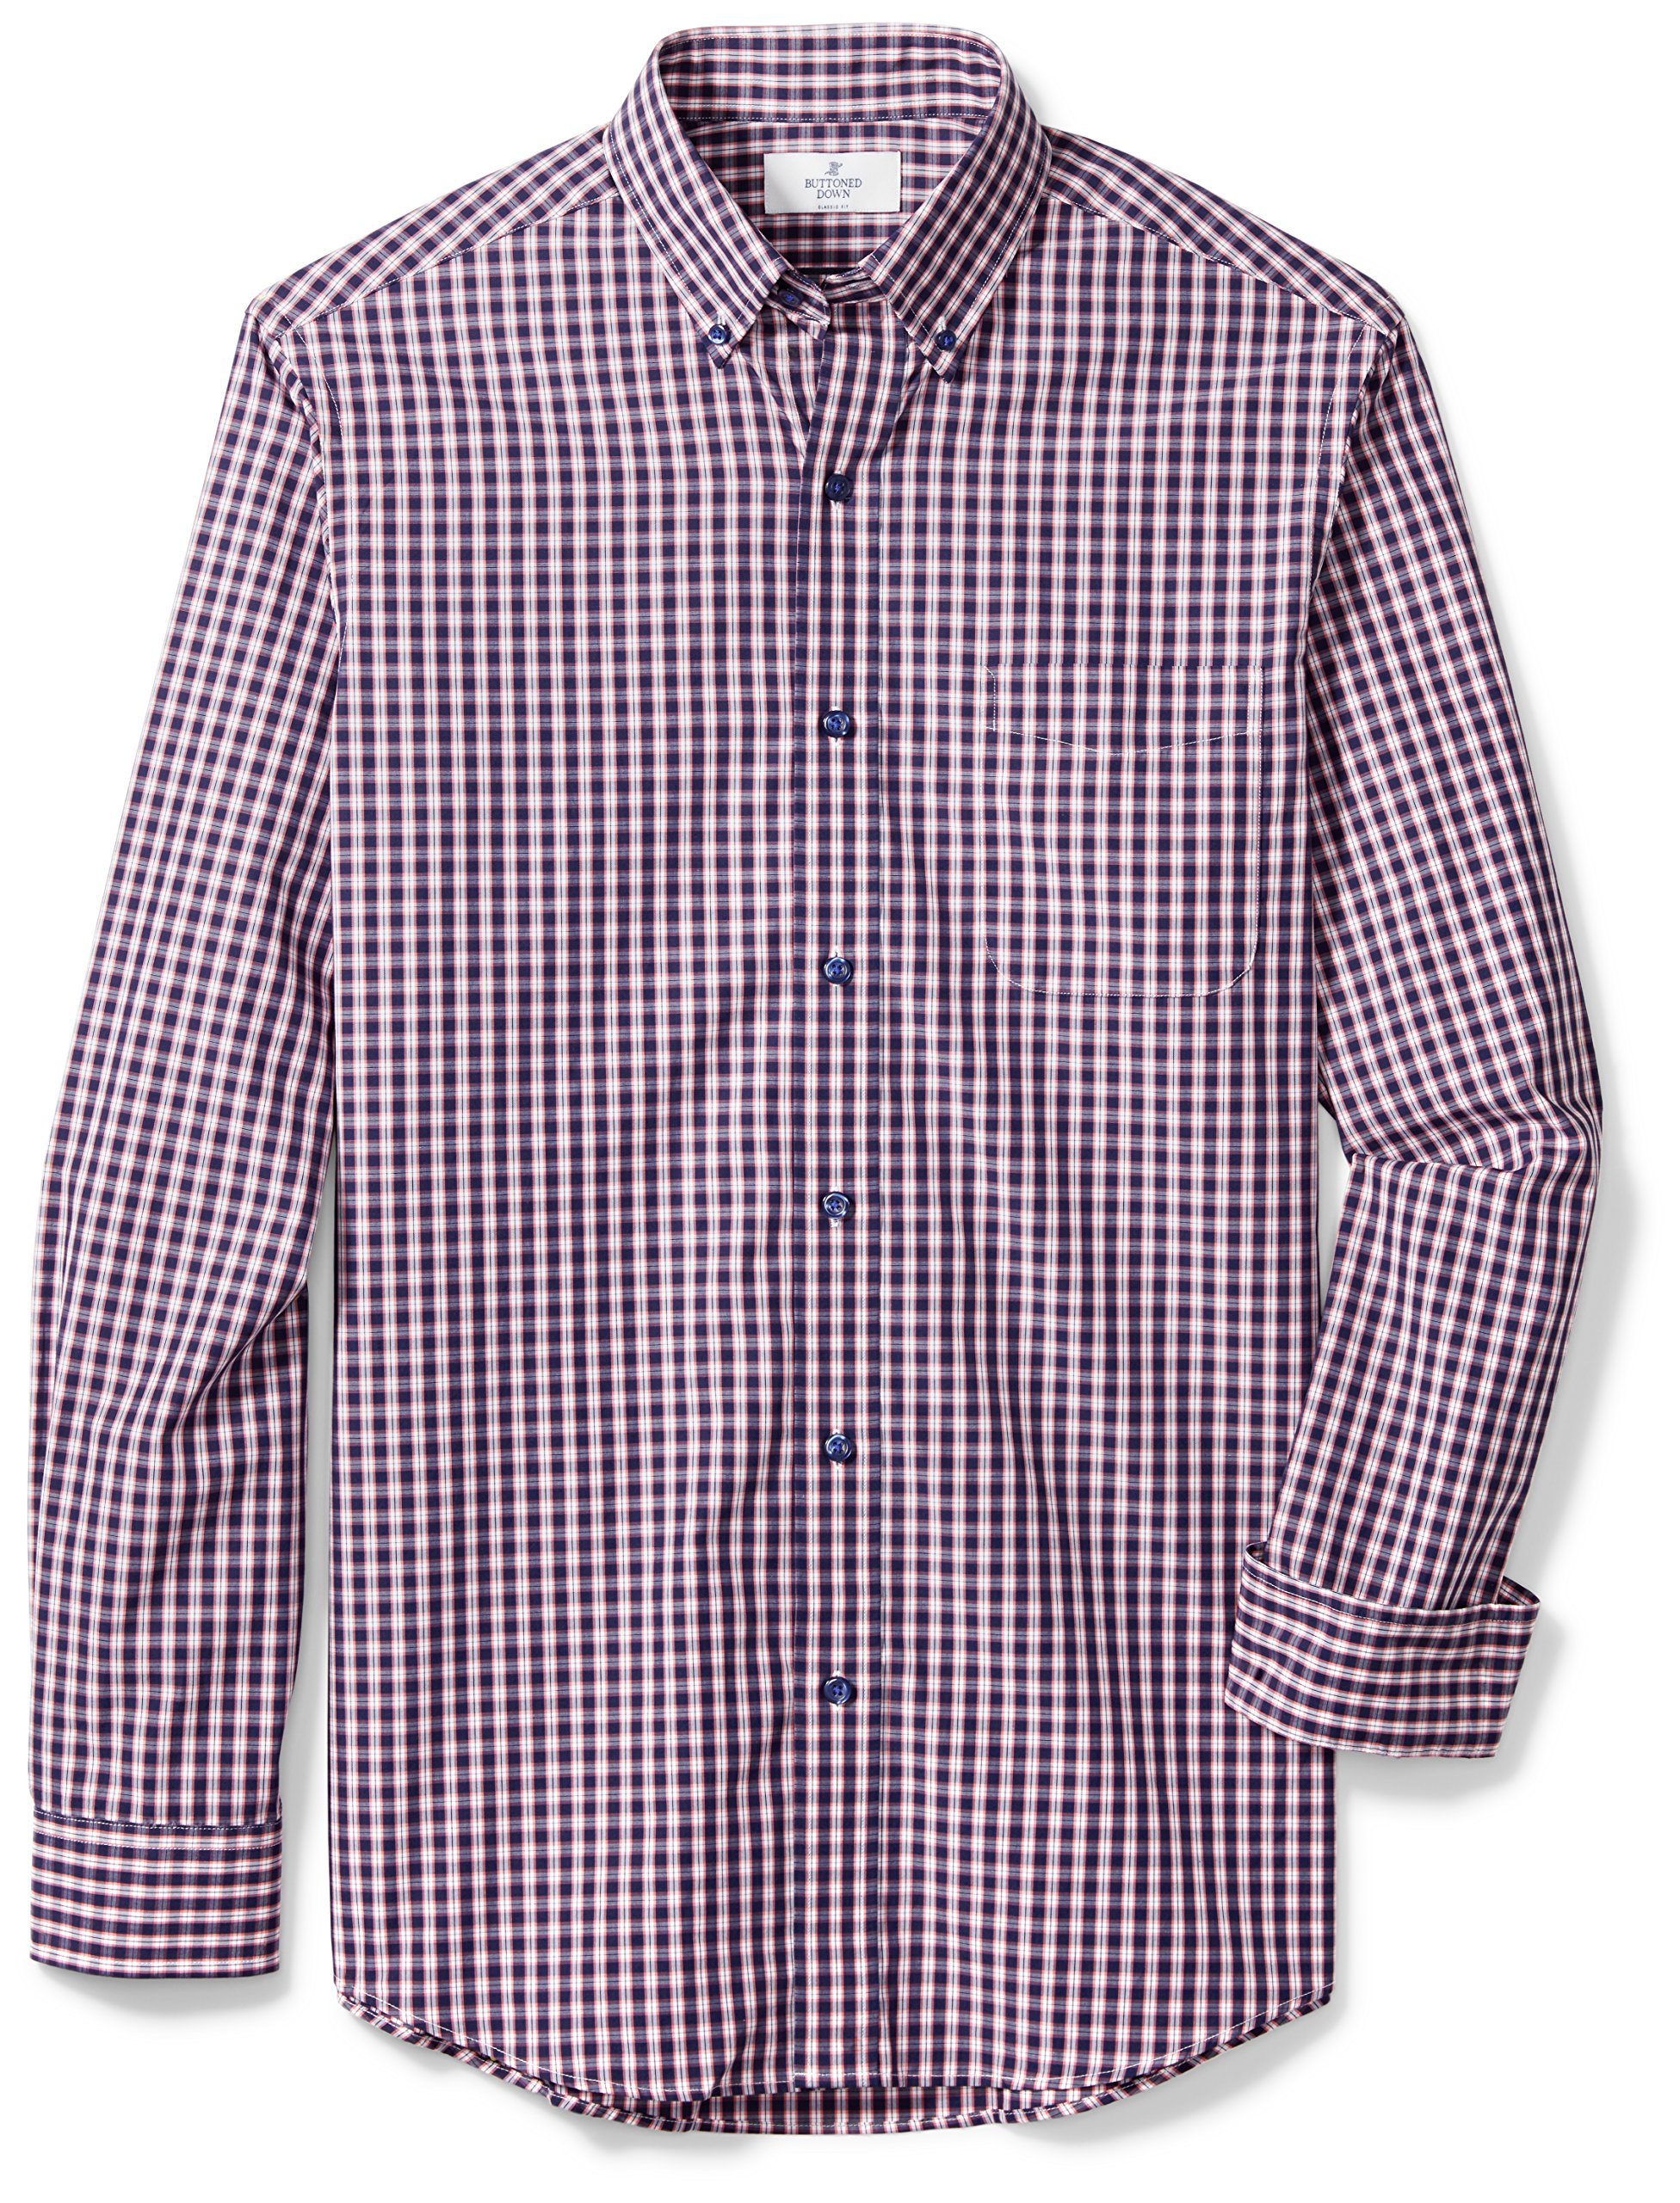 Buttoned Down Men's Classic Fit Supima Cotton Button-Collar Sport Shirt, Navy/Berry Check, L 32/33